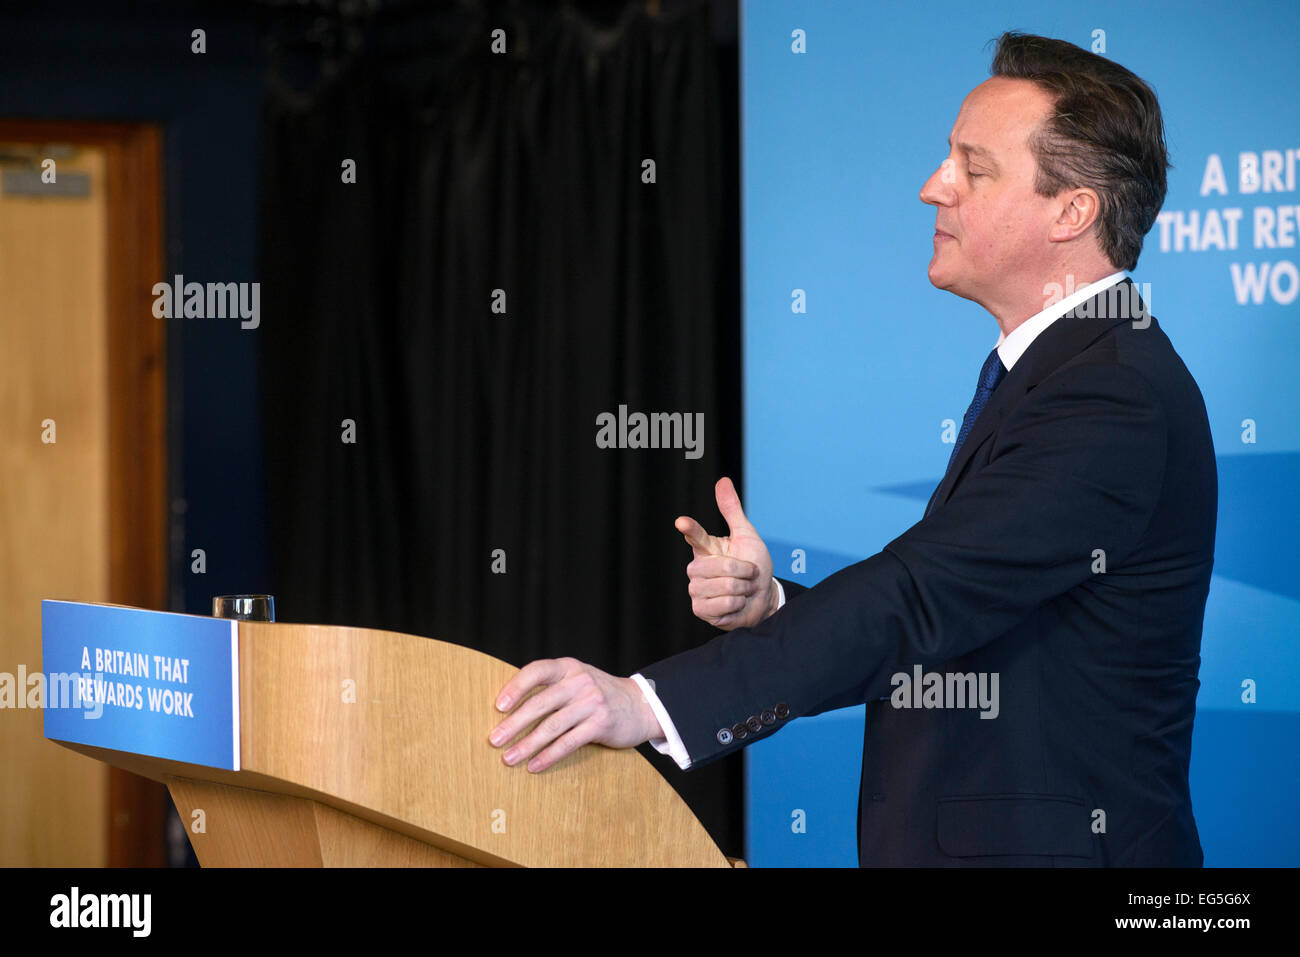 Hove, UK. 17th Feb, 2015. Prime Minister David Cameron makes a speech on 17/02/2015 at Blatchington Mill School, Hove. The PM talked about welfare state and getting people back to work Credit:  Julie Edwards/Alamy Live News Stock Photo